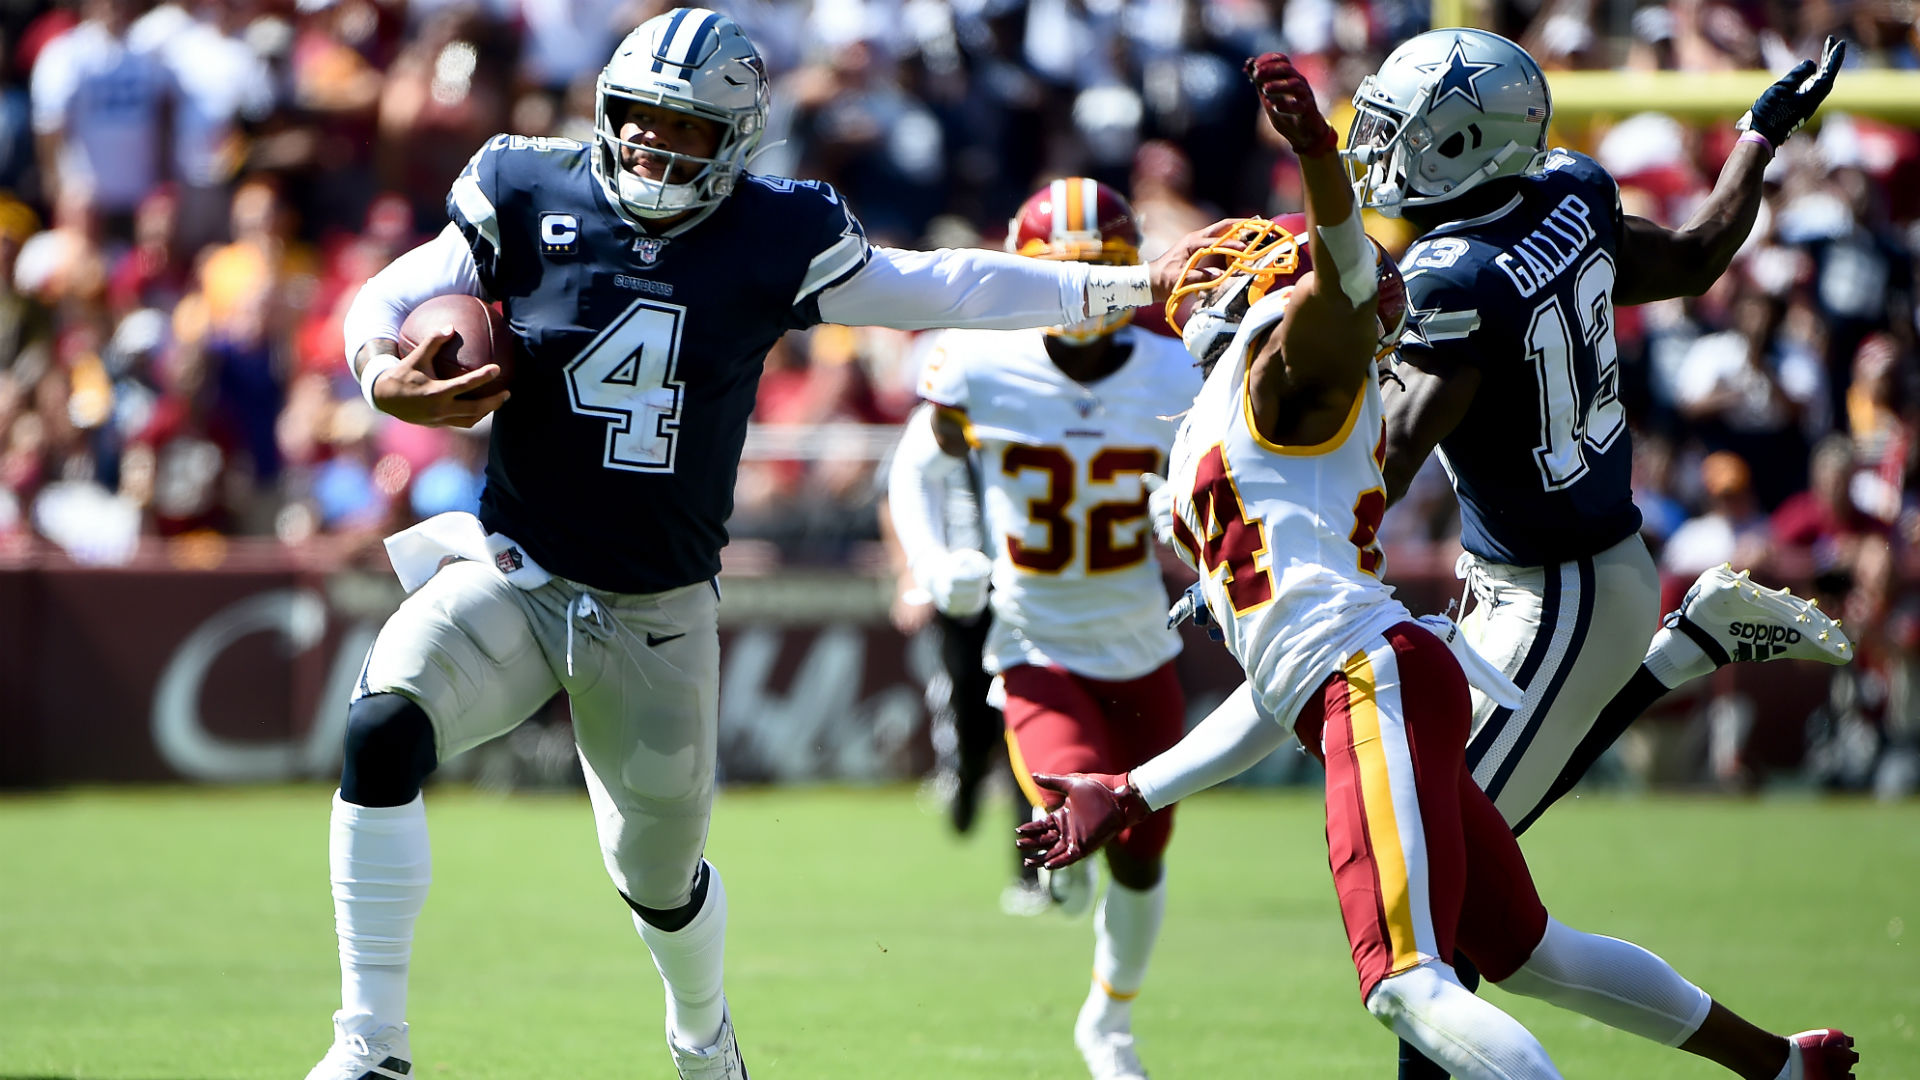 Dak Prescott gets revenge after Josh Norman's trash talk